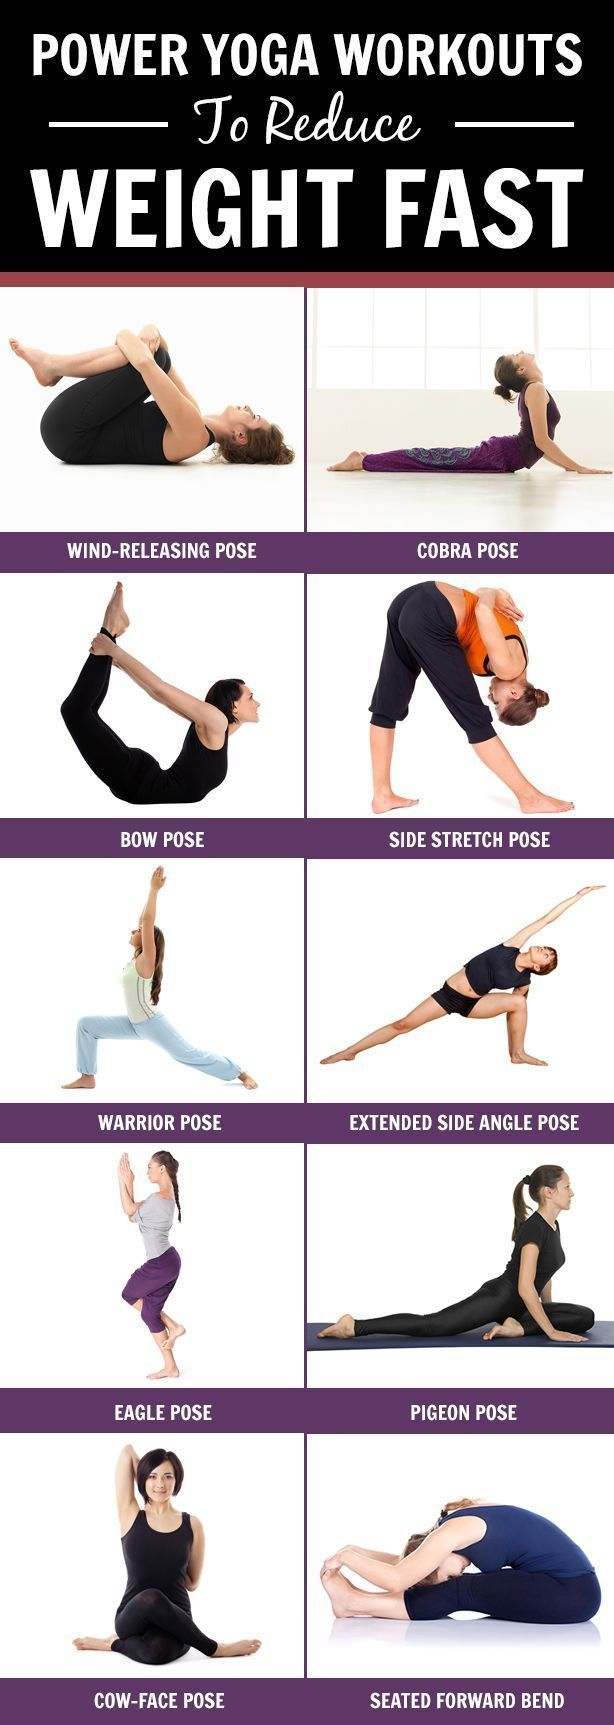 Power Yoga Workouts to Reduce Weight Fast | Posted By: NewHowtoLoseBellyFat.com